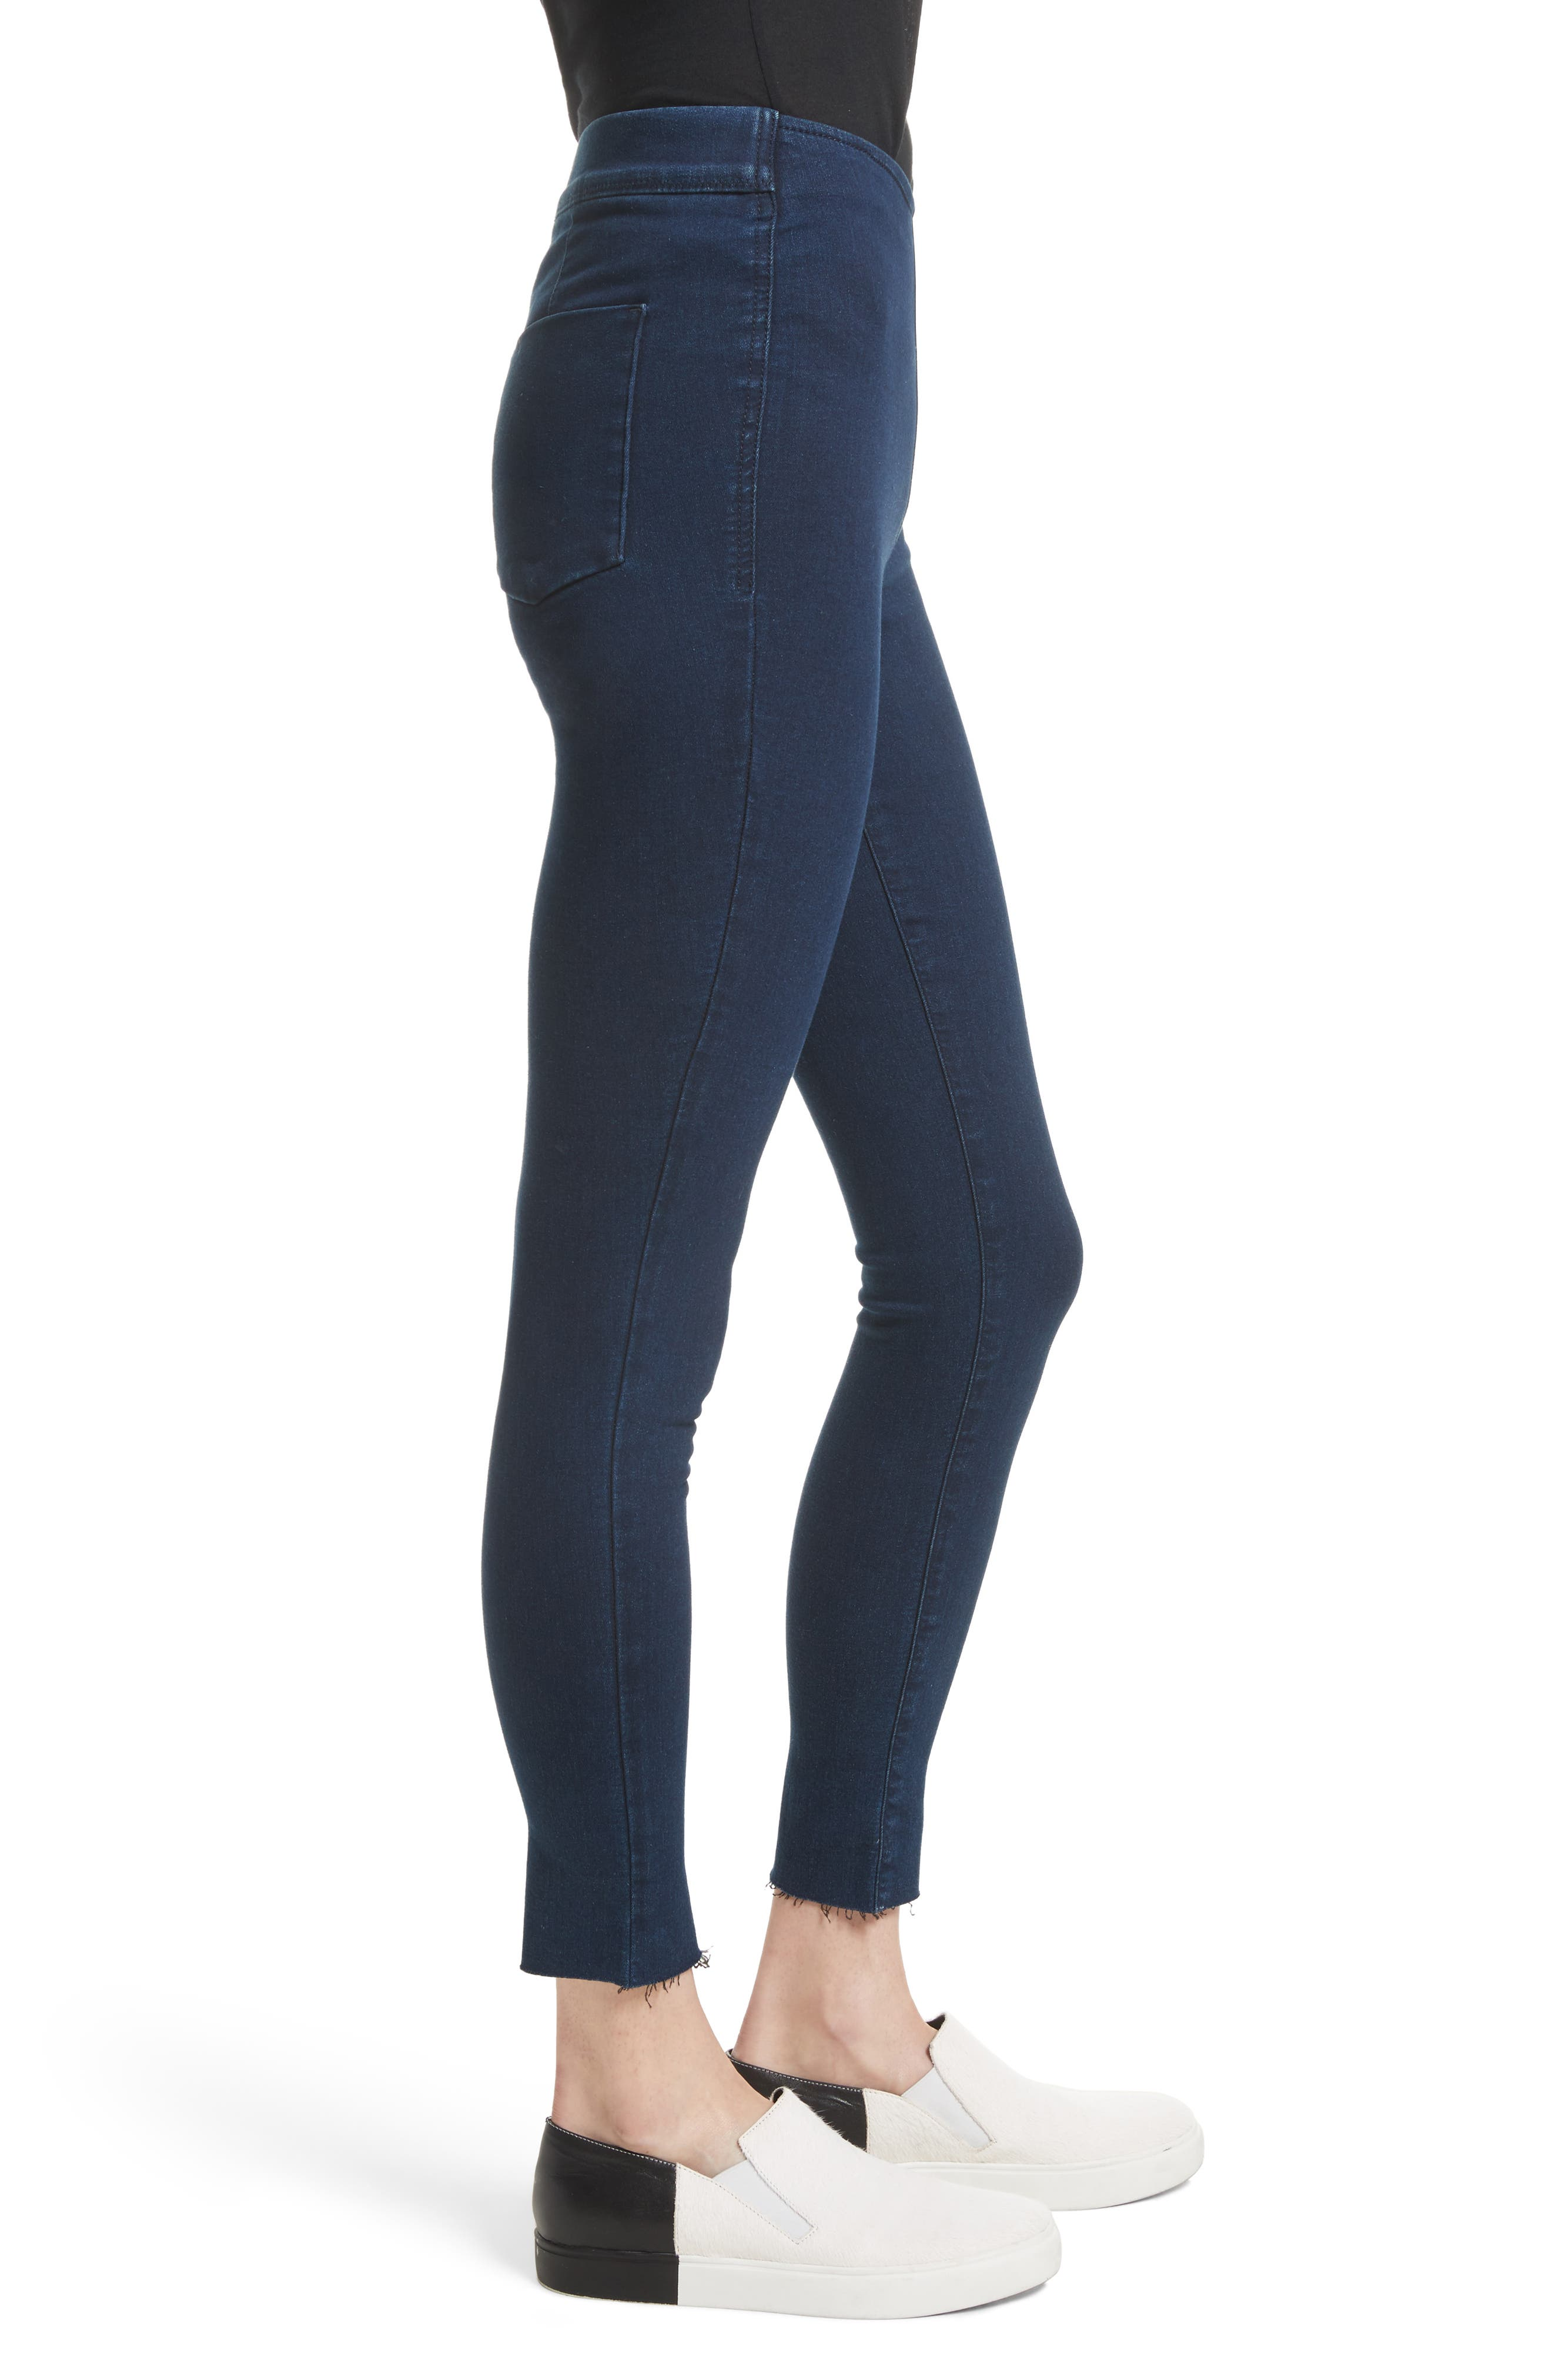 Easy Goes It Leggings,                             Alternate thumbnail 3, color,                             Dark Denim